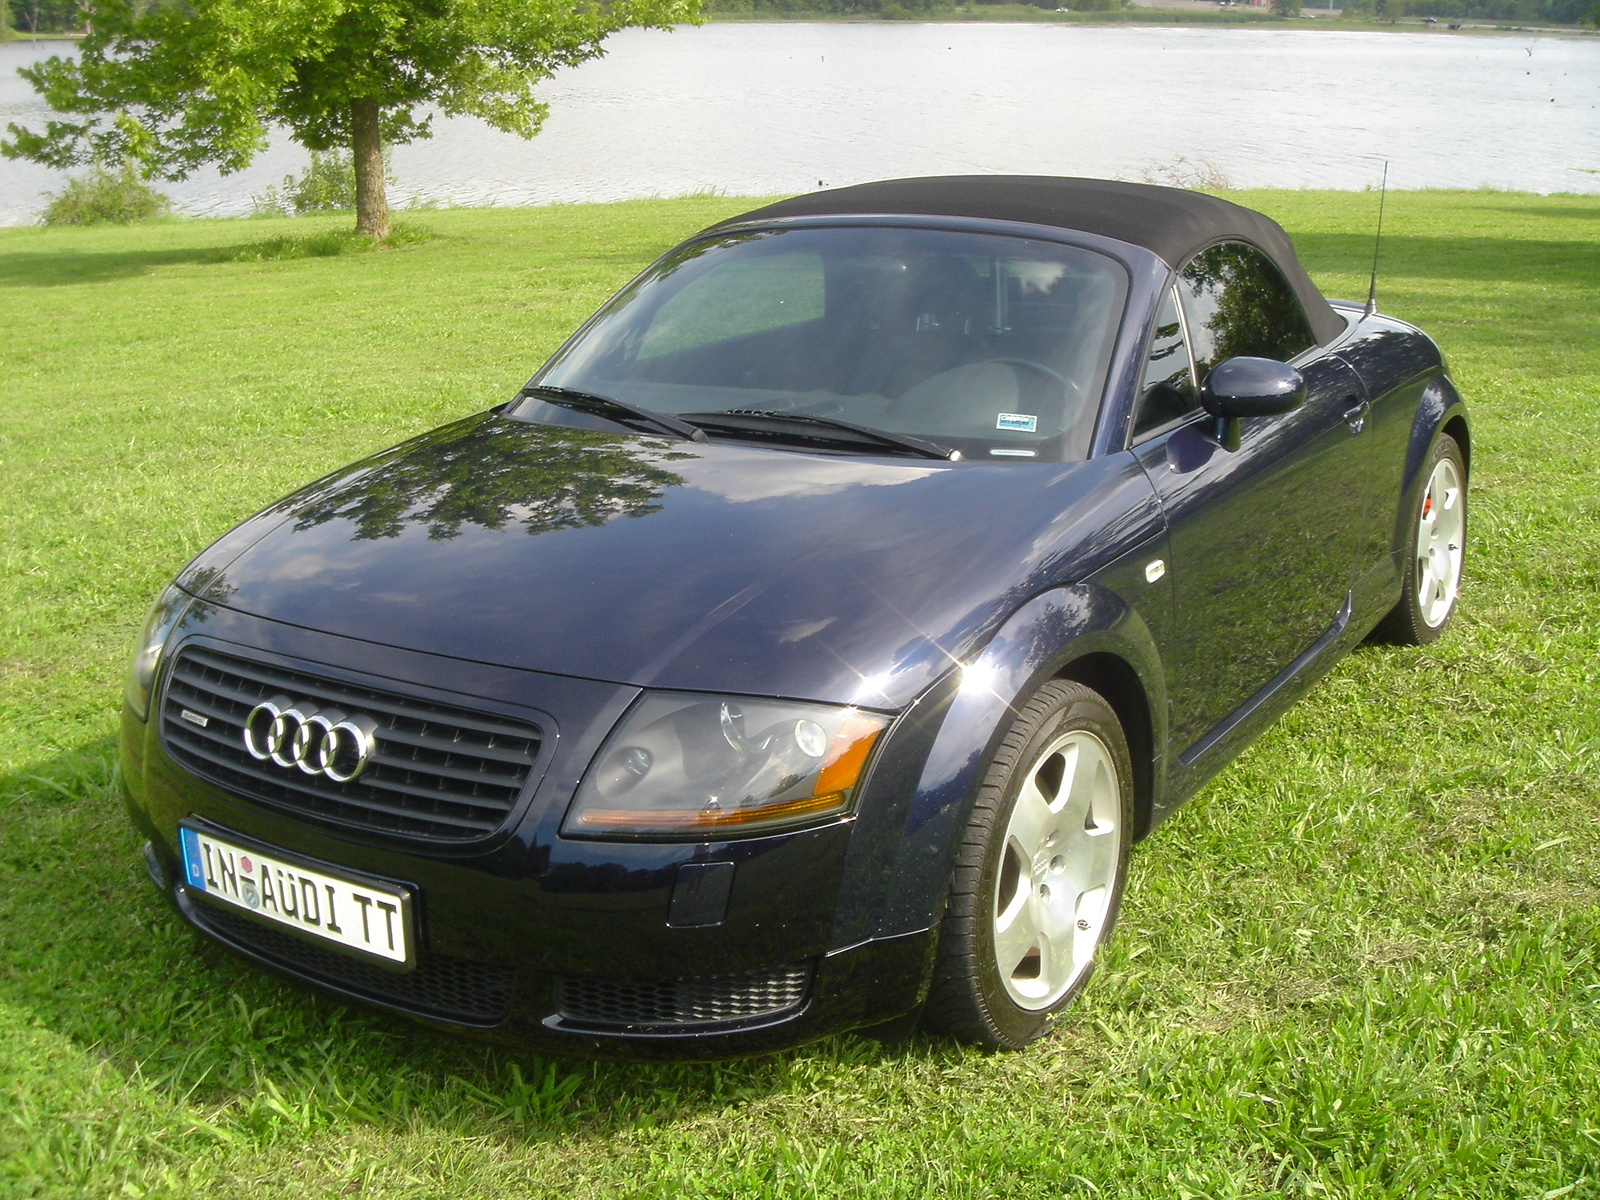 Wire diagram 2002 audi tt transformer wiring diagram single phase audi tt 32 2002 technical specifications interior and exterior photo audi tt 3 audi tt 3 2 2002html wire diagram 2002 audi tt wire diagram 2002 audi tt asfbconference2016 Image collections